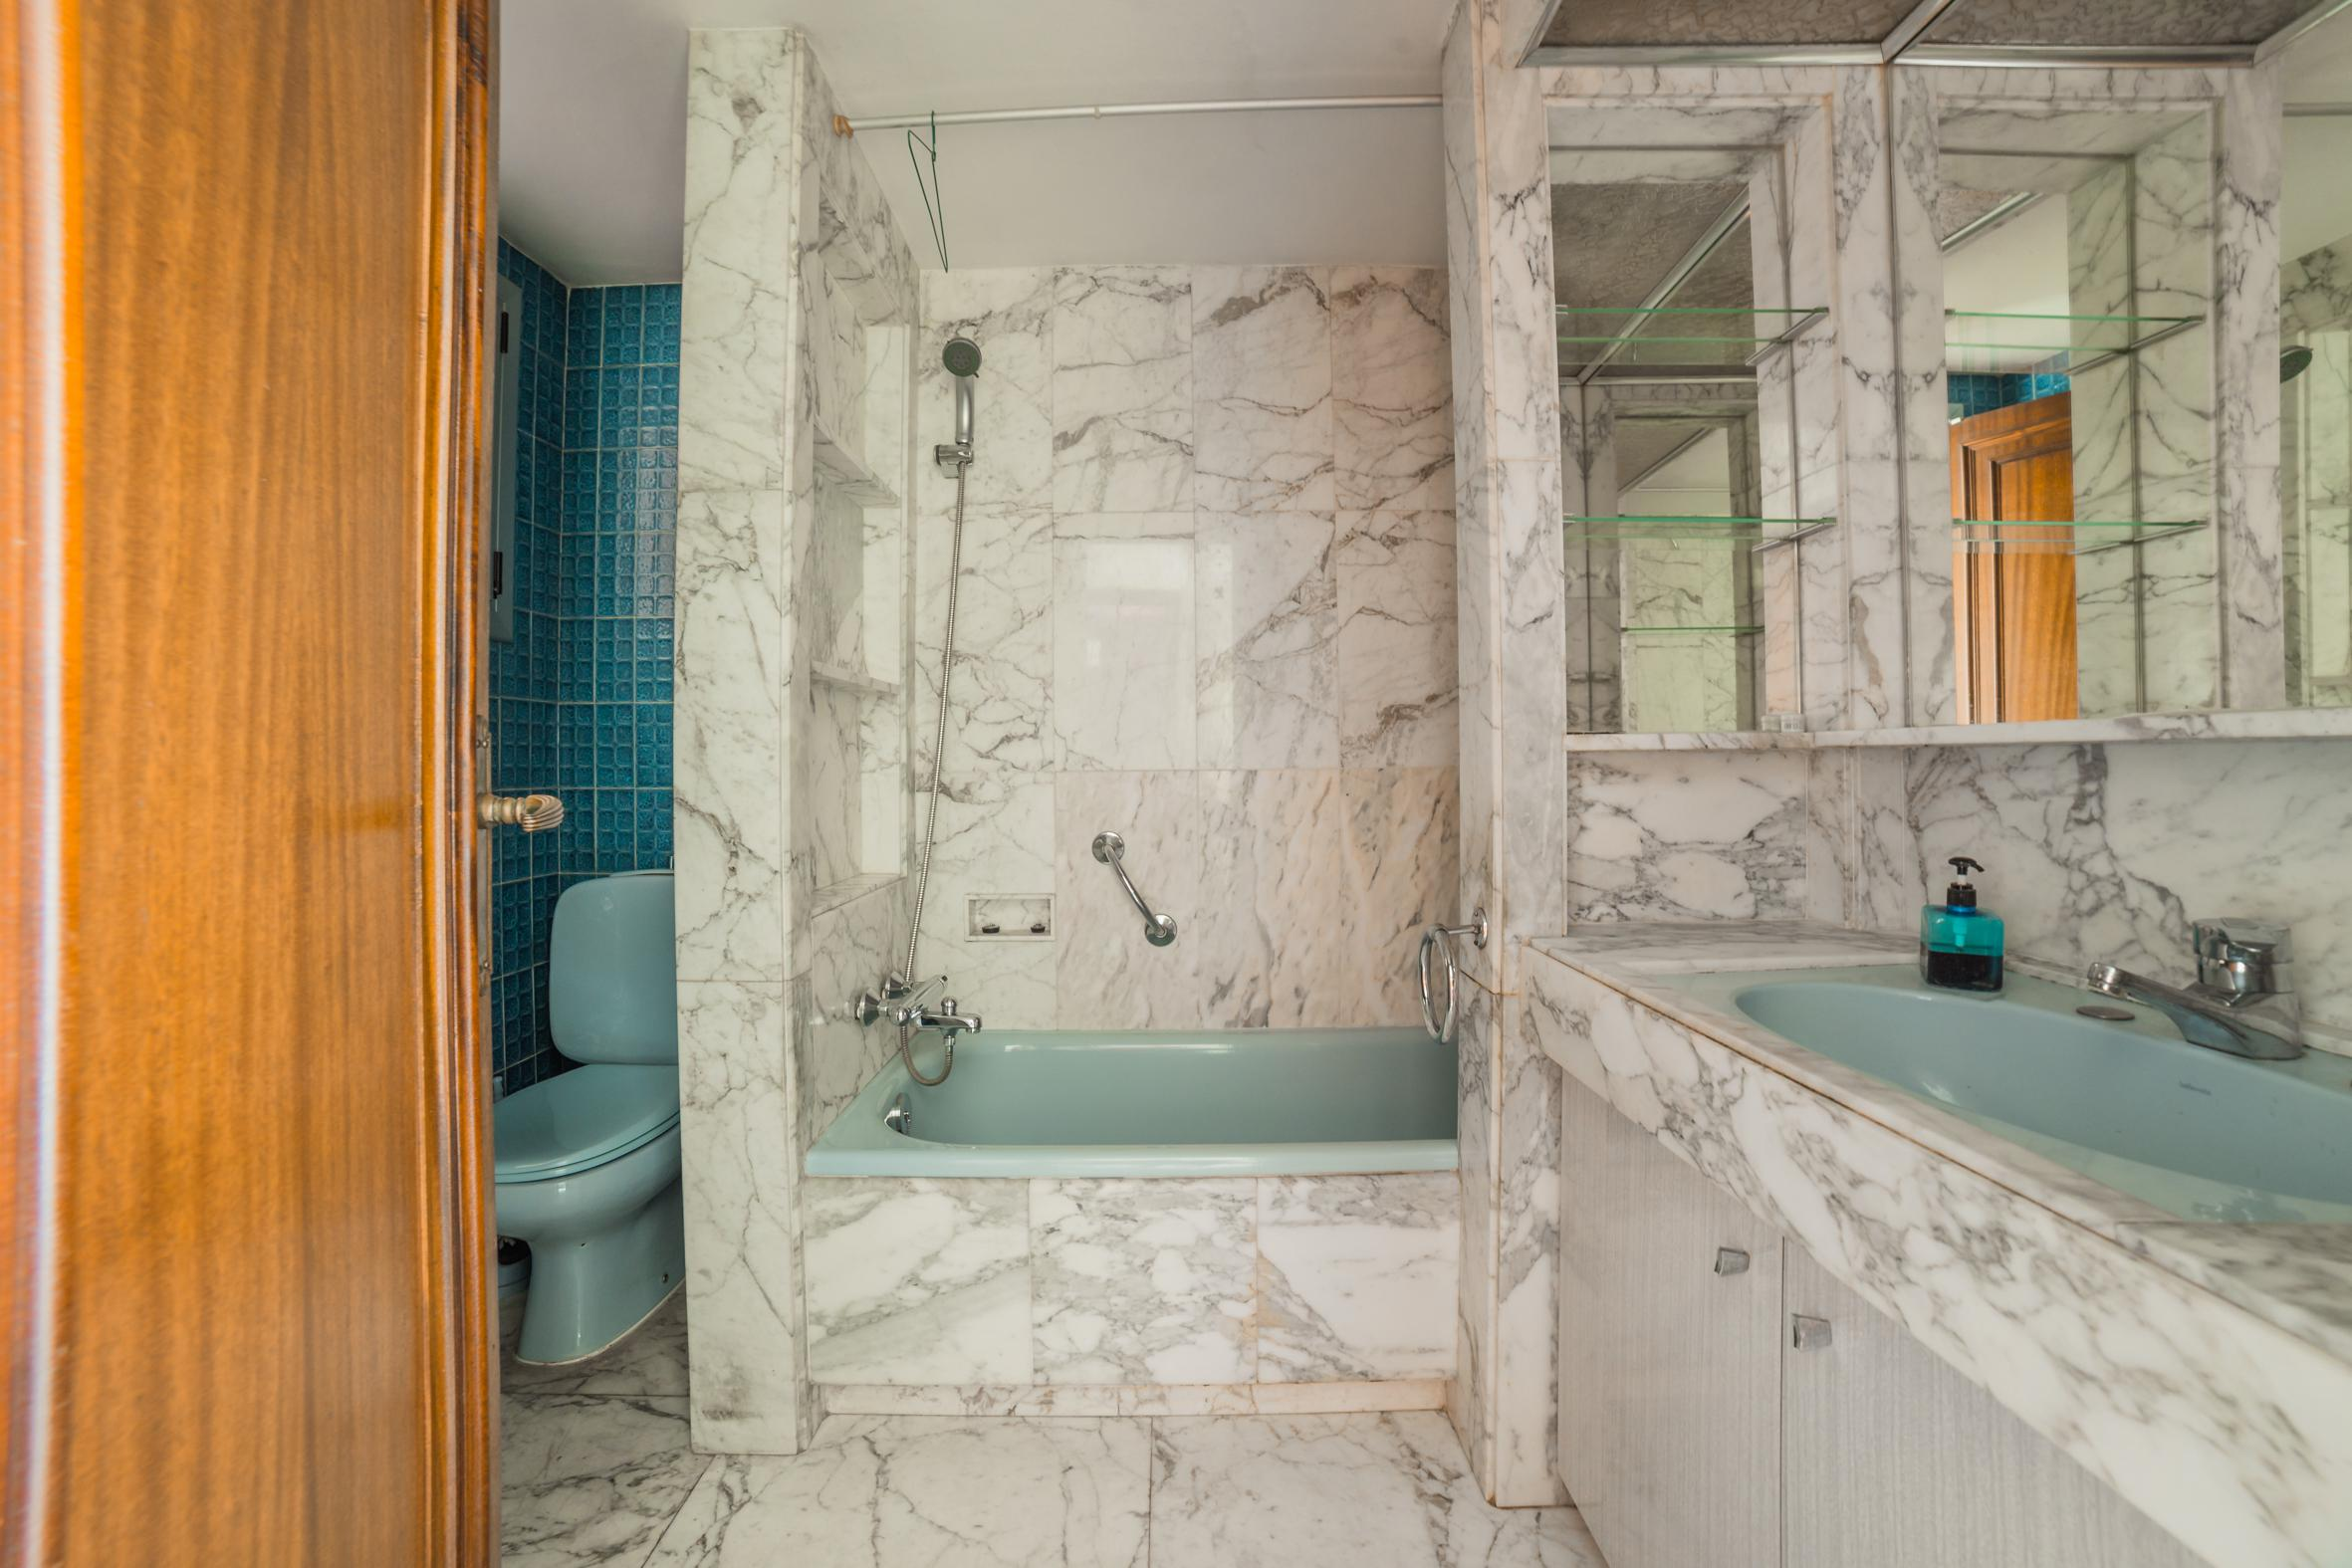 248988 Flat for sale in Les Corts, Les Corts 23